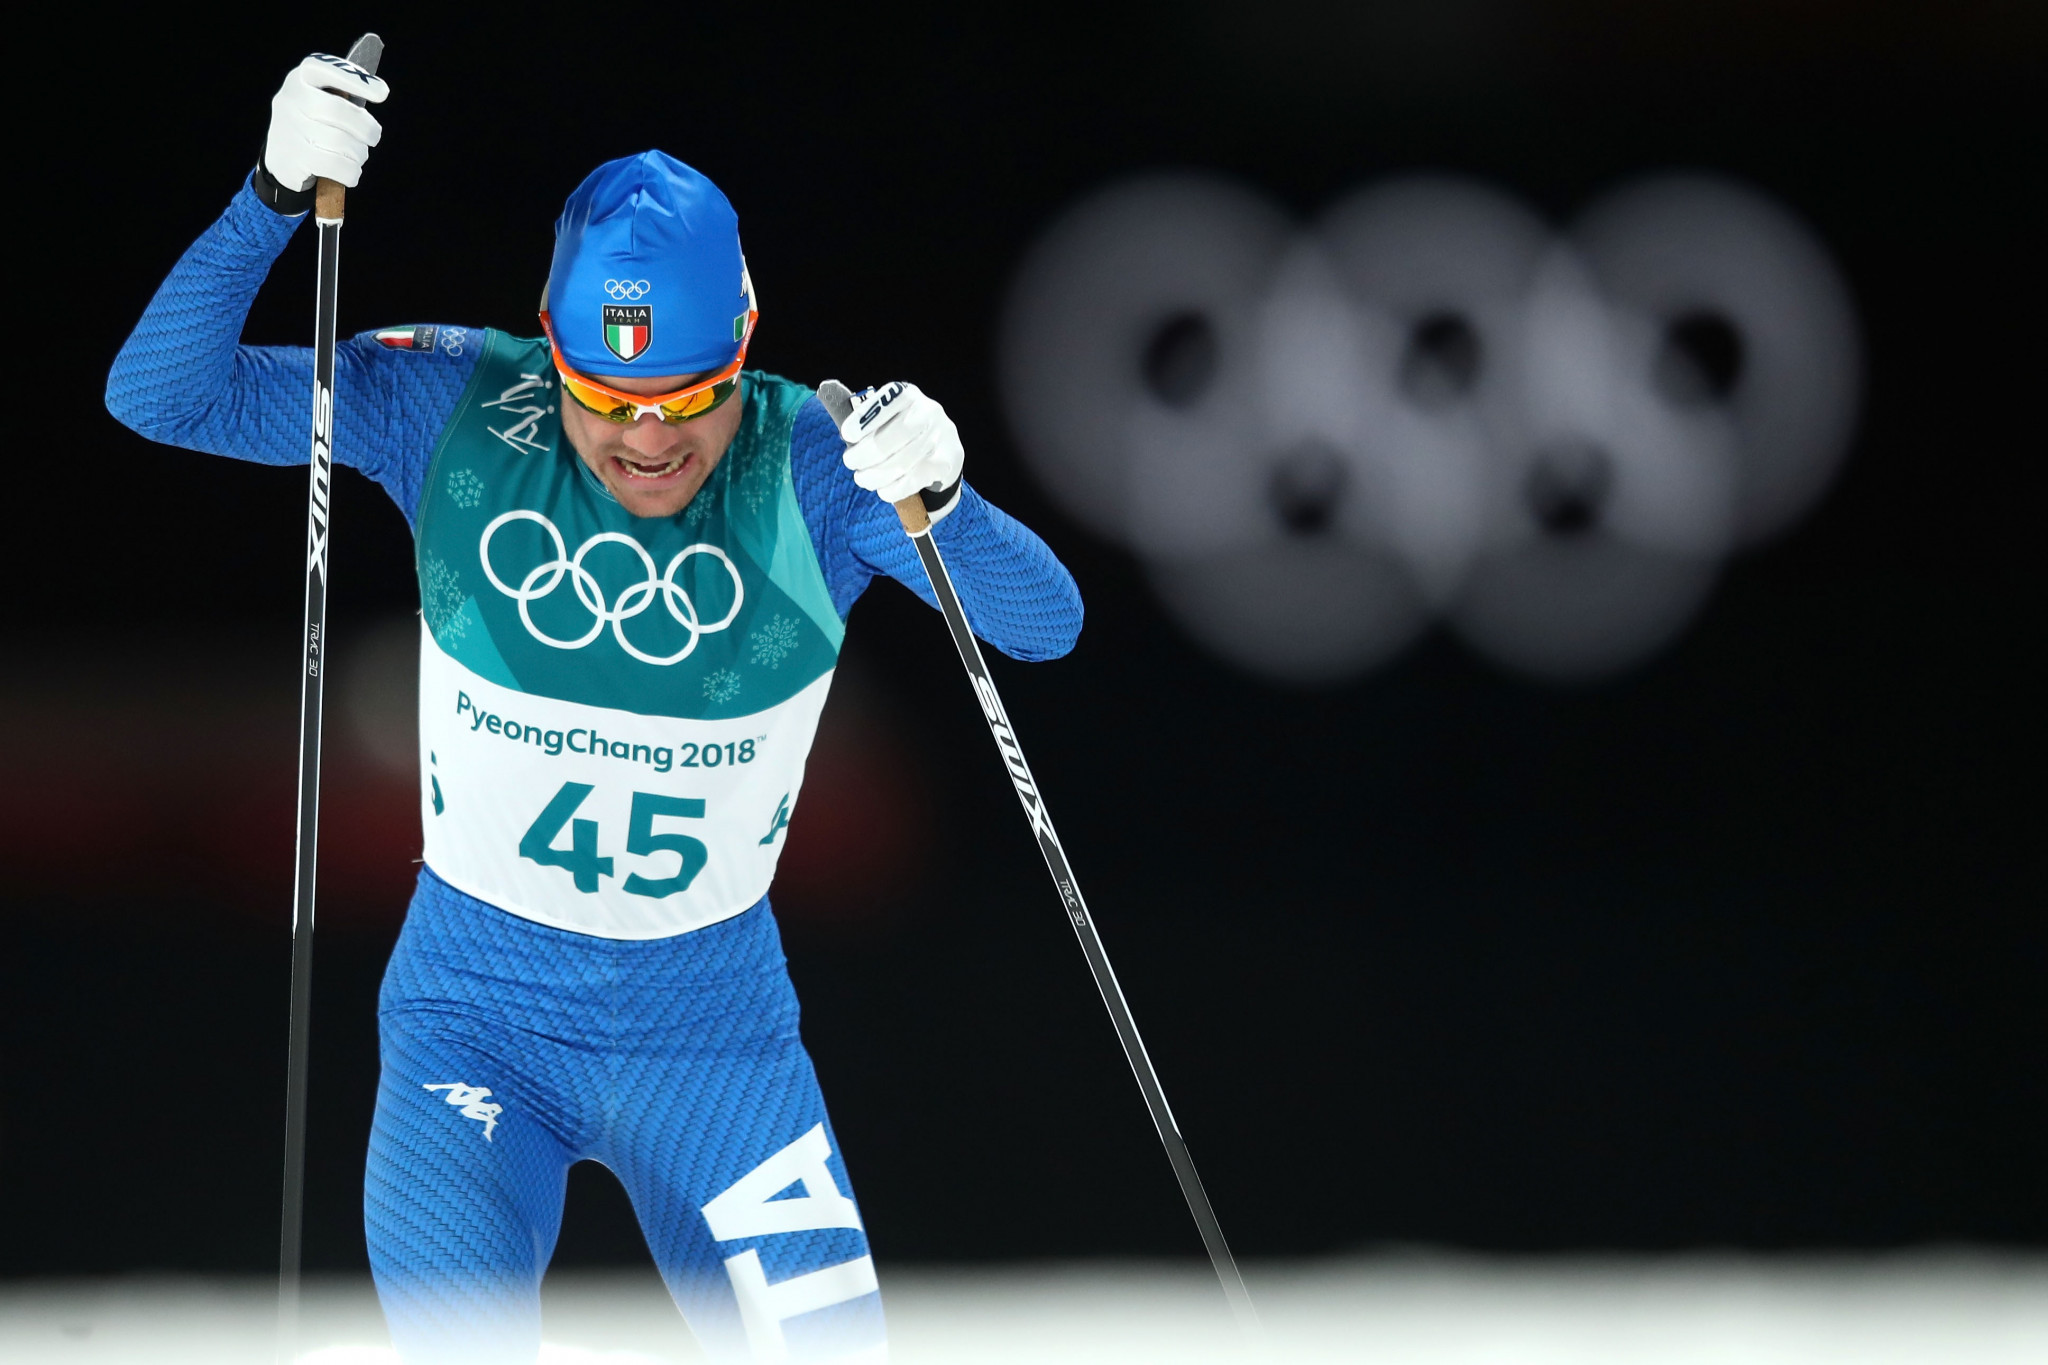 Triple Winter Olympian Runggaldier announces Nordic combined retirement